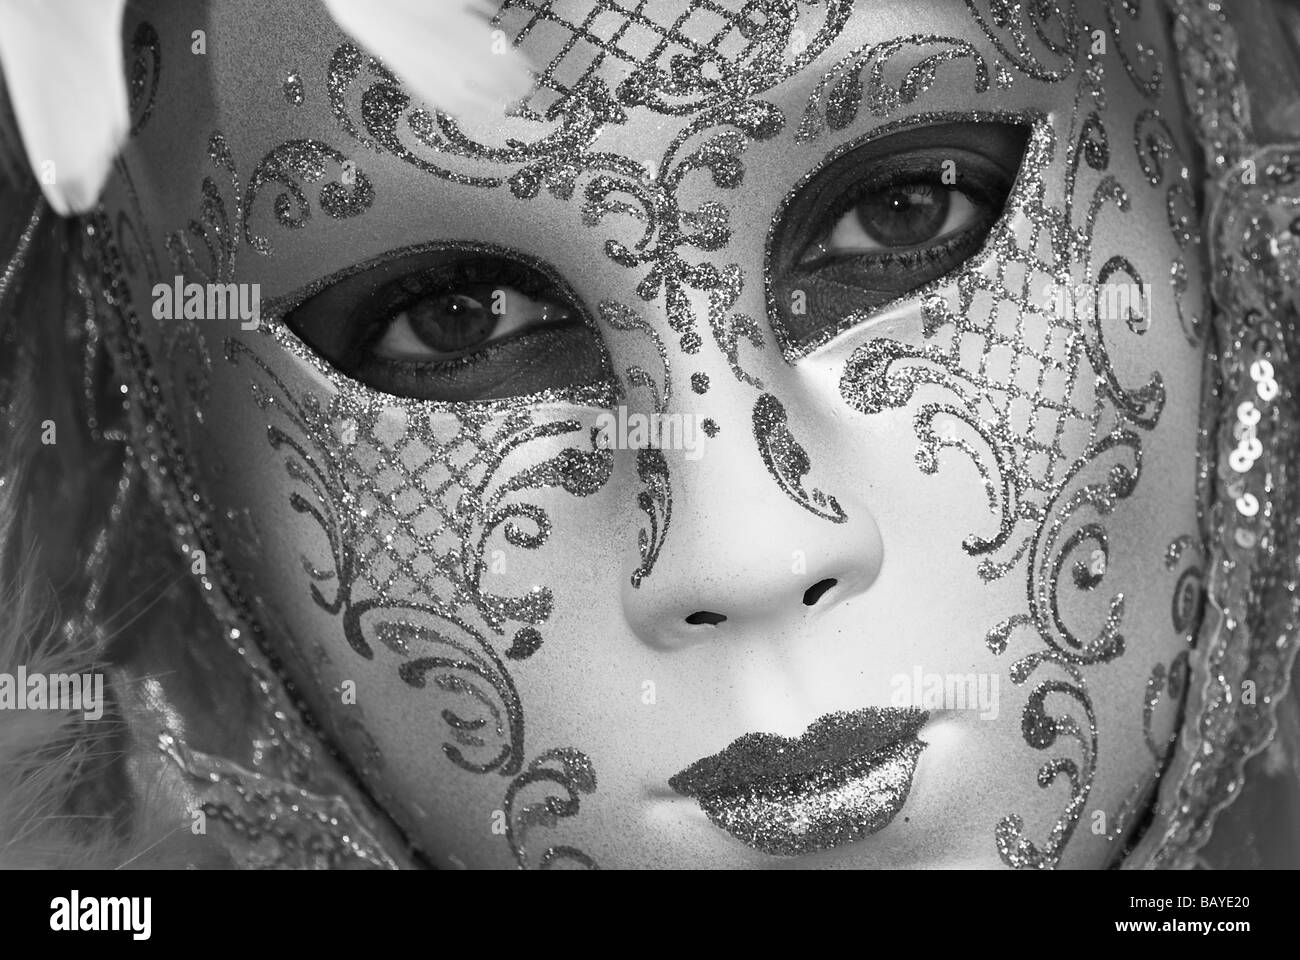 Black and white close up of girl with a venetian carnival mask - Stock Image